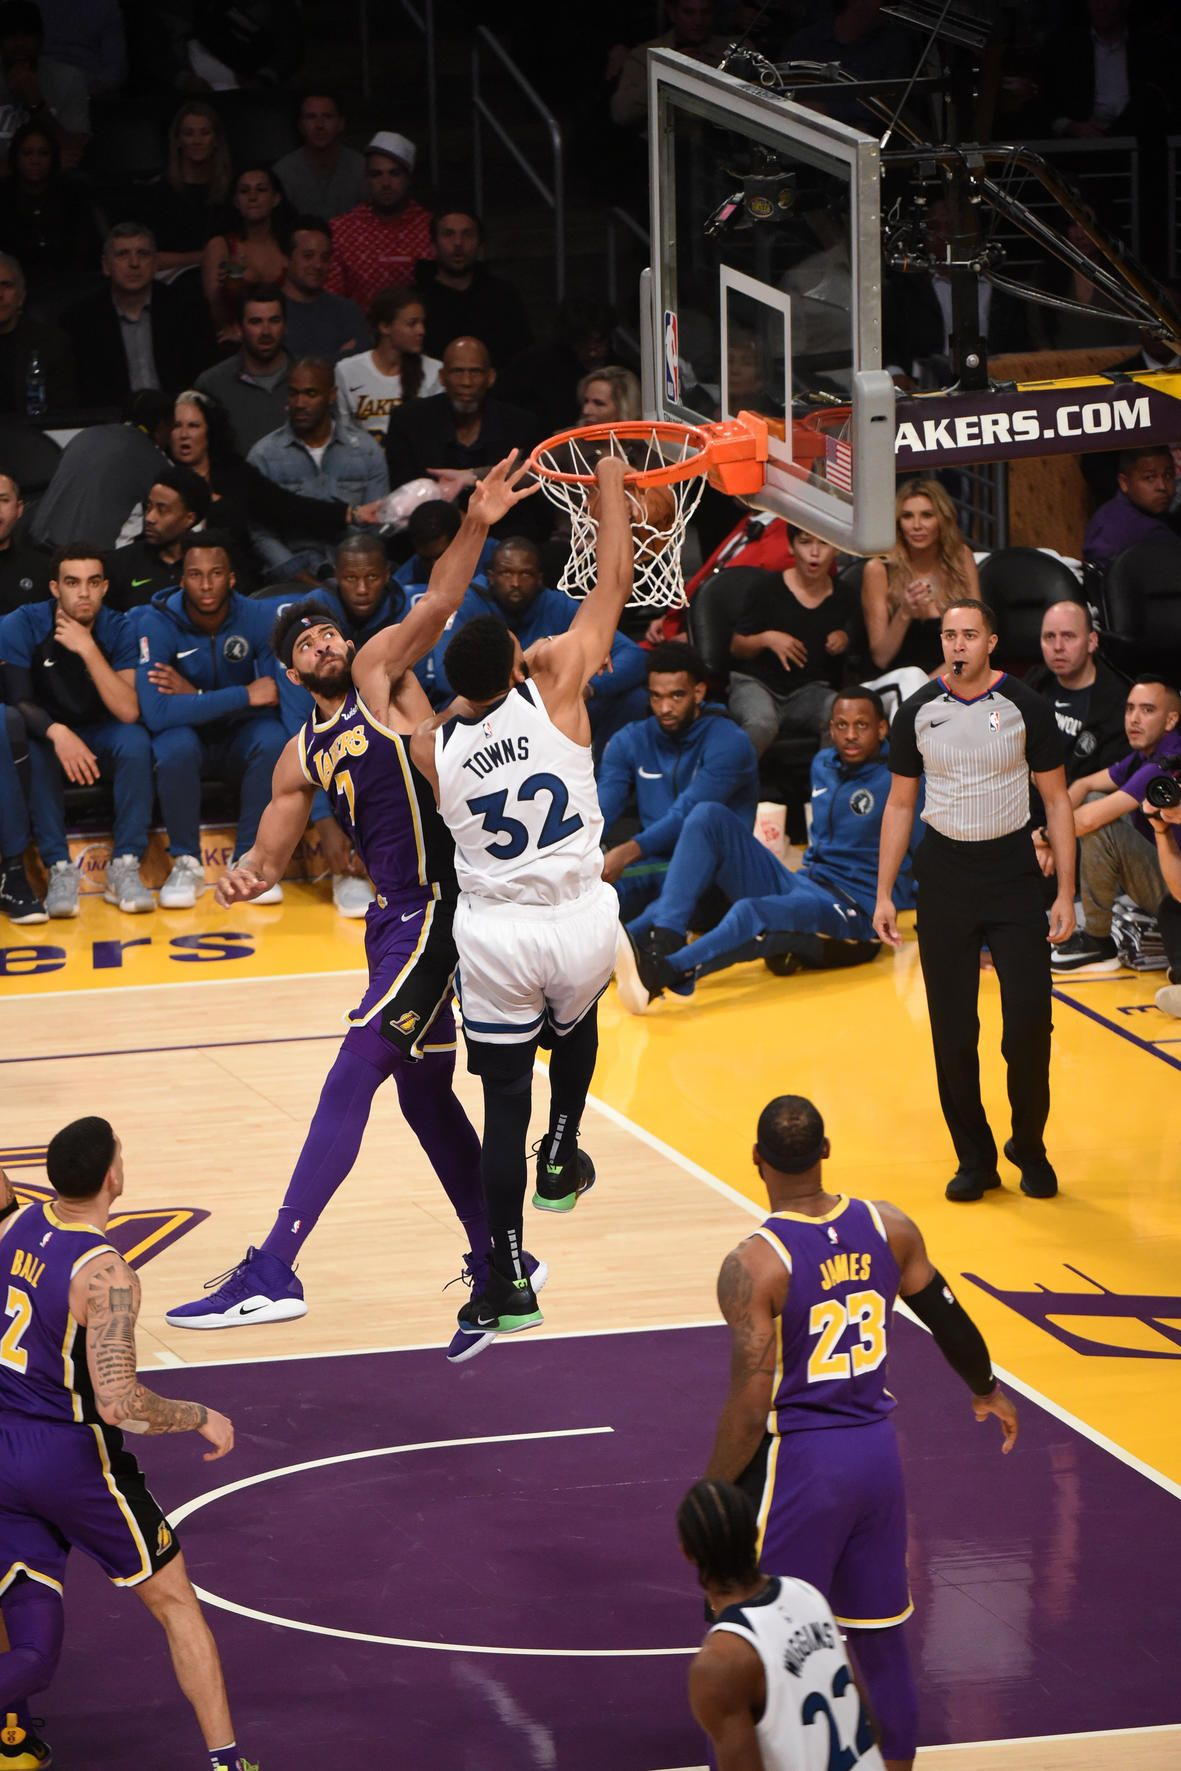 Los Angeles Ca November 7 Karl Anthony Towns 32 Of The Minnesota Timberwolves Dunks The Ball Karl Anthony Towns Minnesota Timberwolves Basketball Pictures